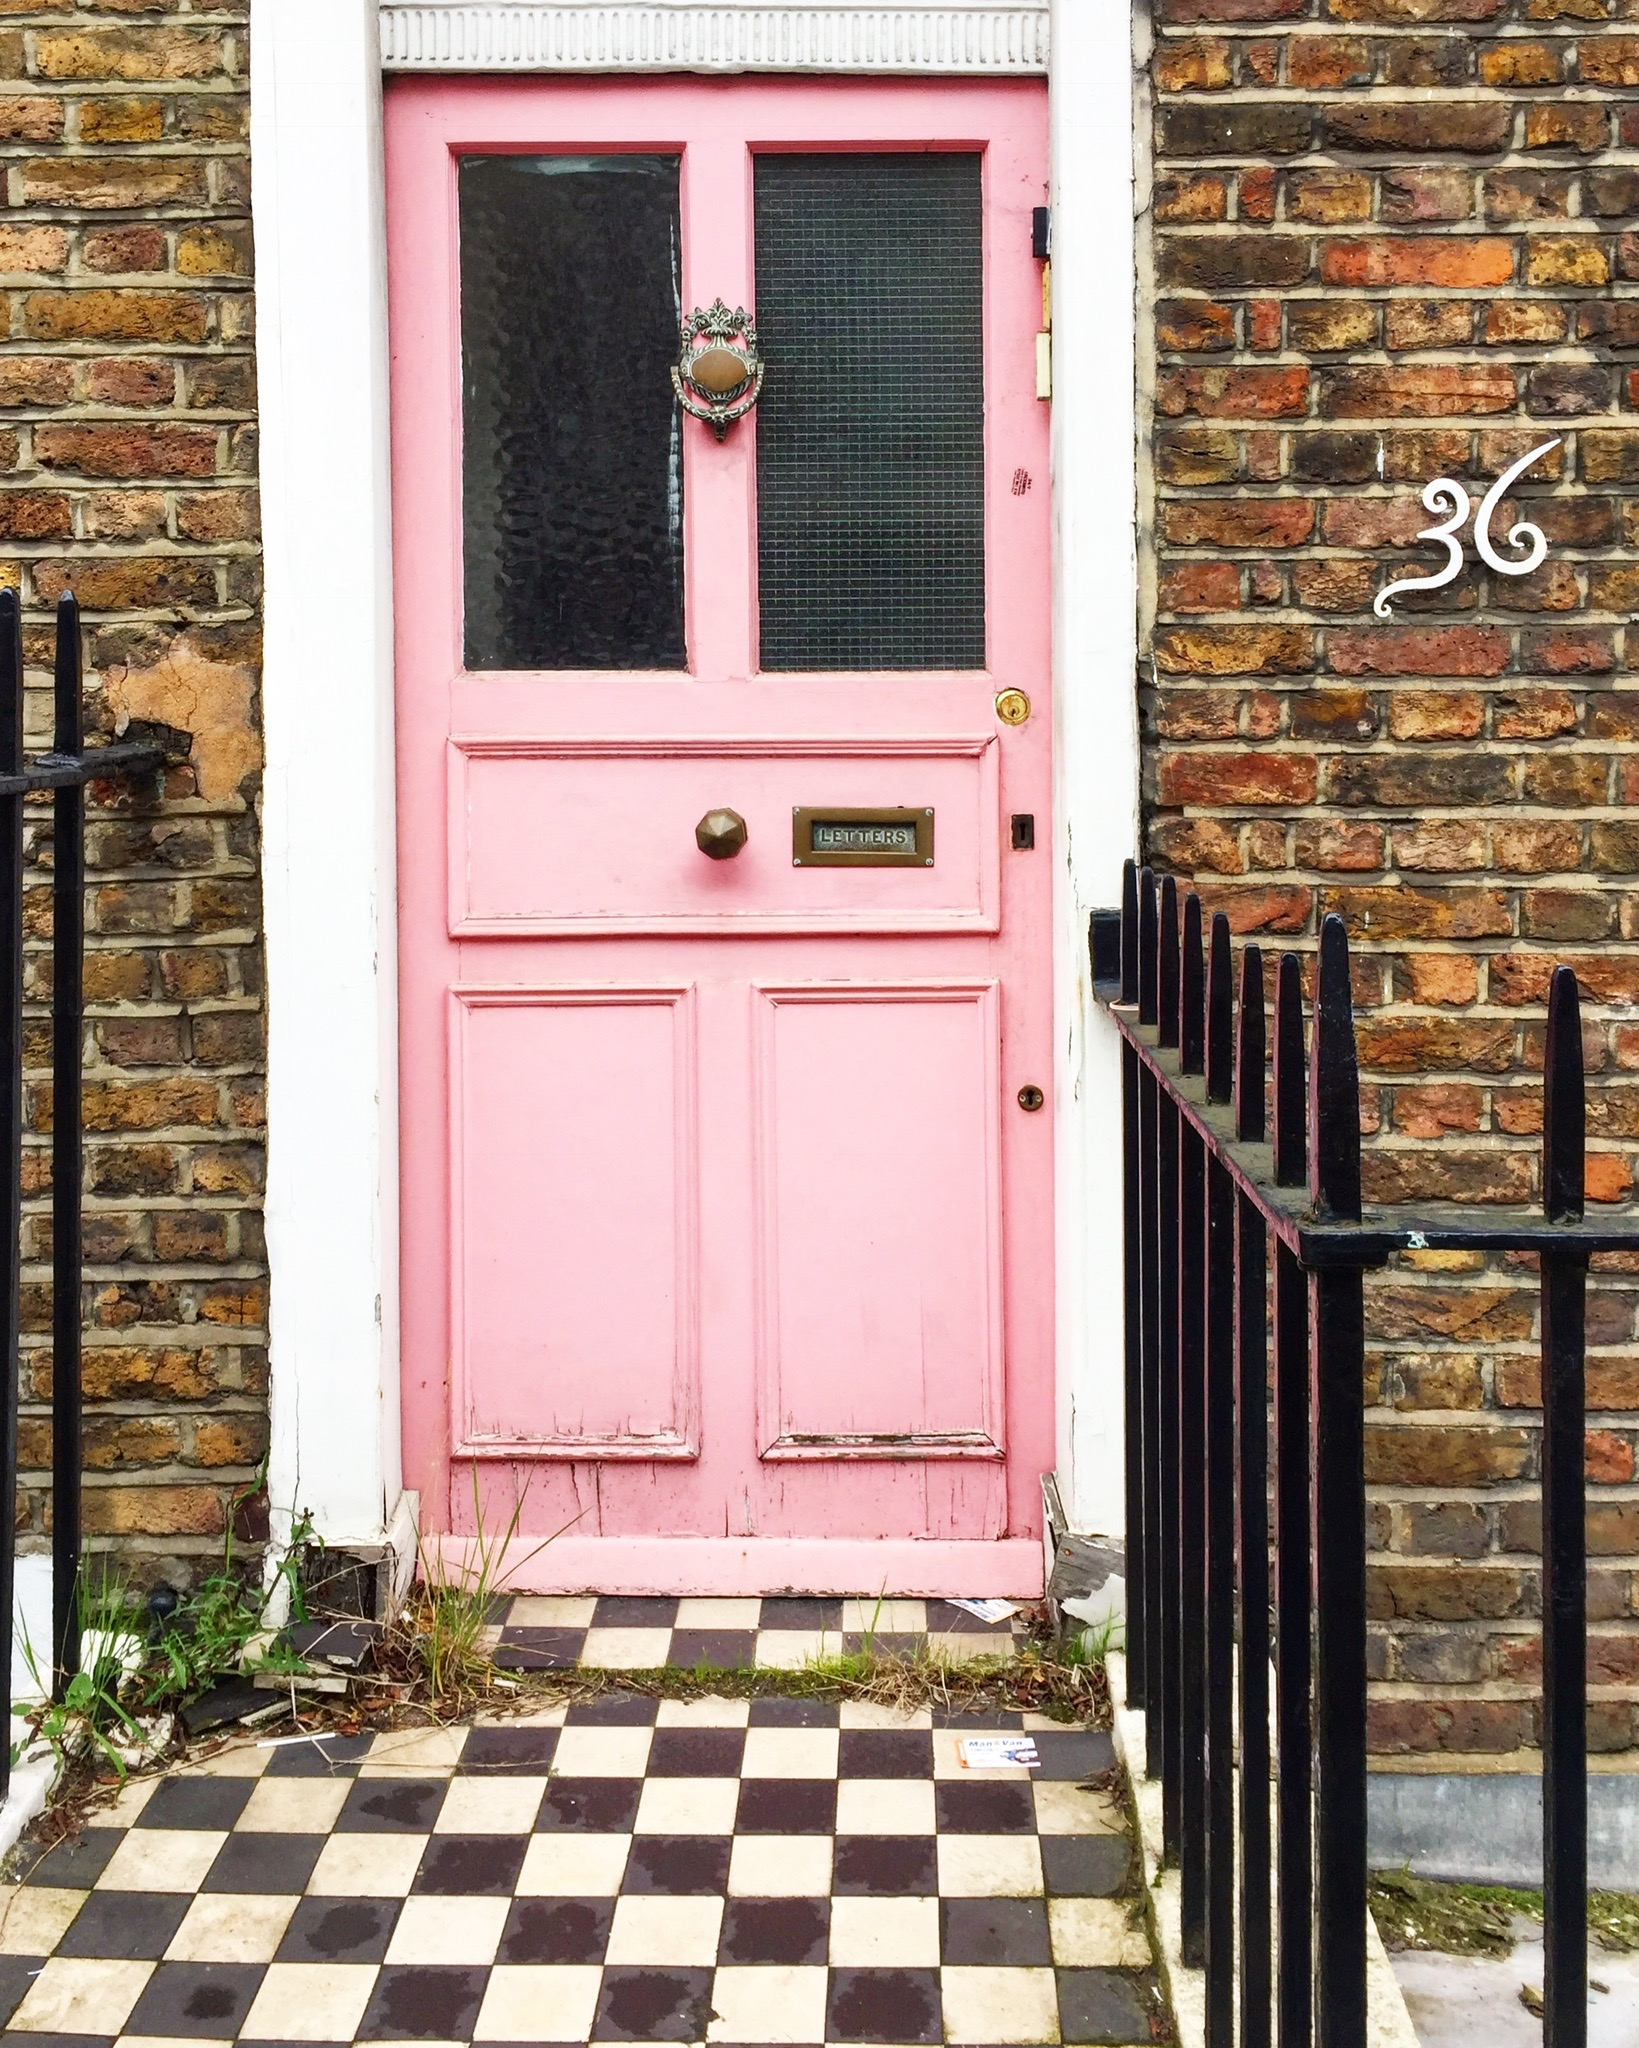 This Marylebone door has a killer combo of the perfect shade of pink and black u0026 white tiles but I think what makes this door special is the whimsical ... & The top 8 pink doors of London u2013 London is Pink